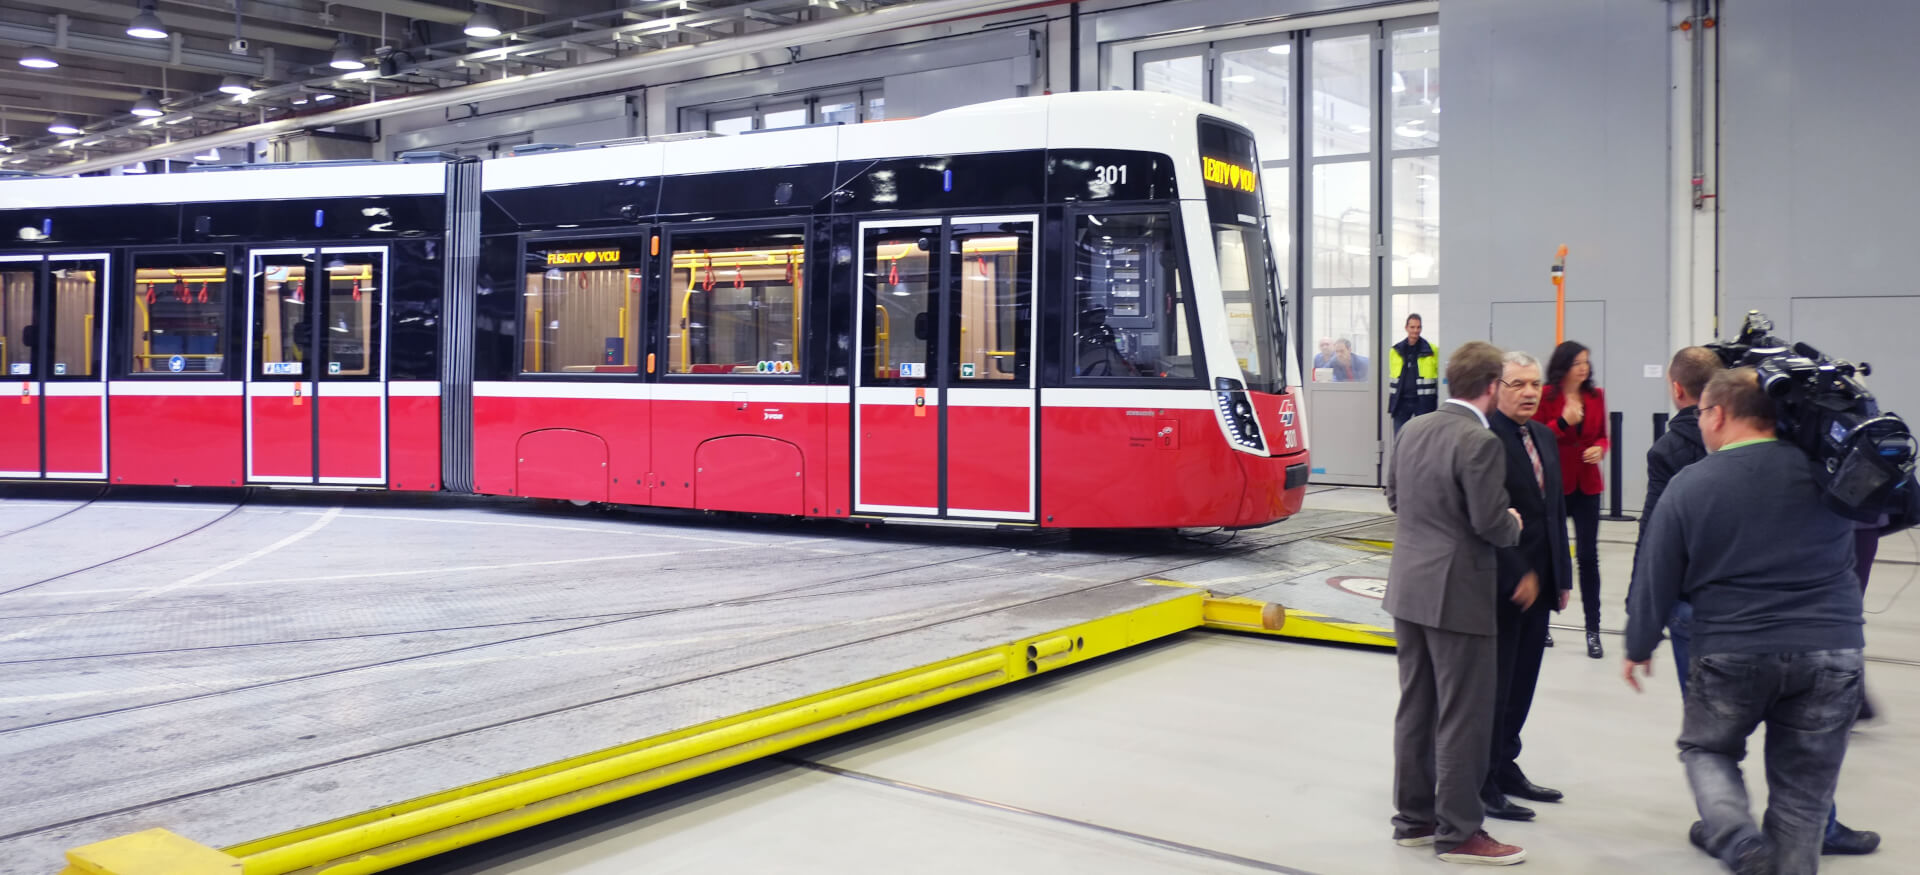 Industrial Design & Transportation Design - Döllmann Design + Architektur, Industrial Design, Transportation Design, a new vienna tram on opening